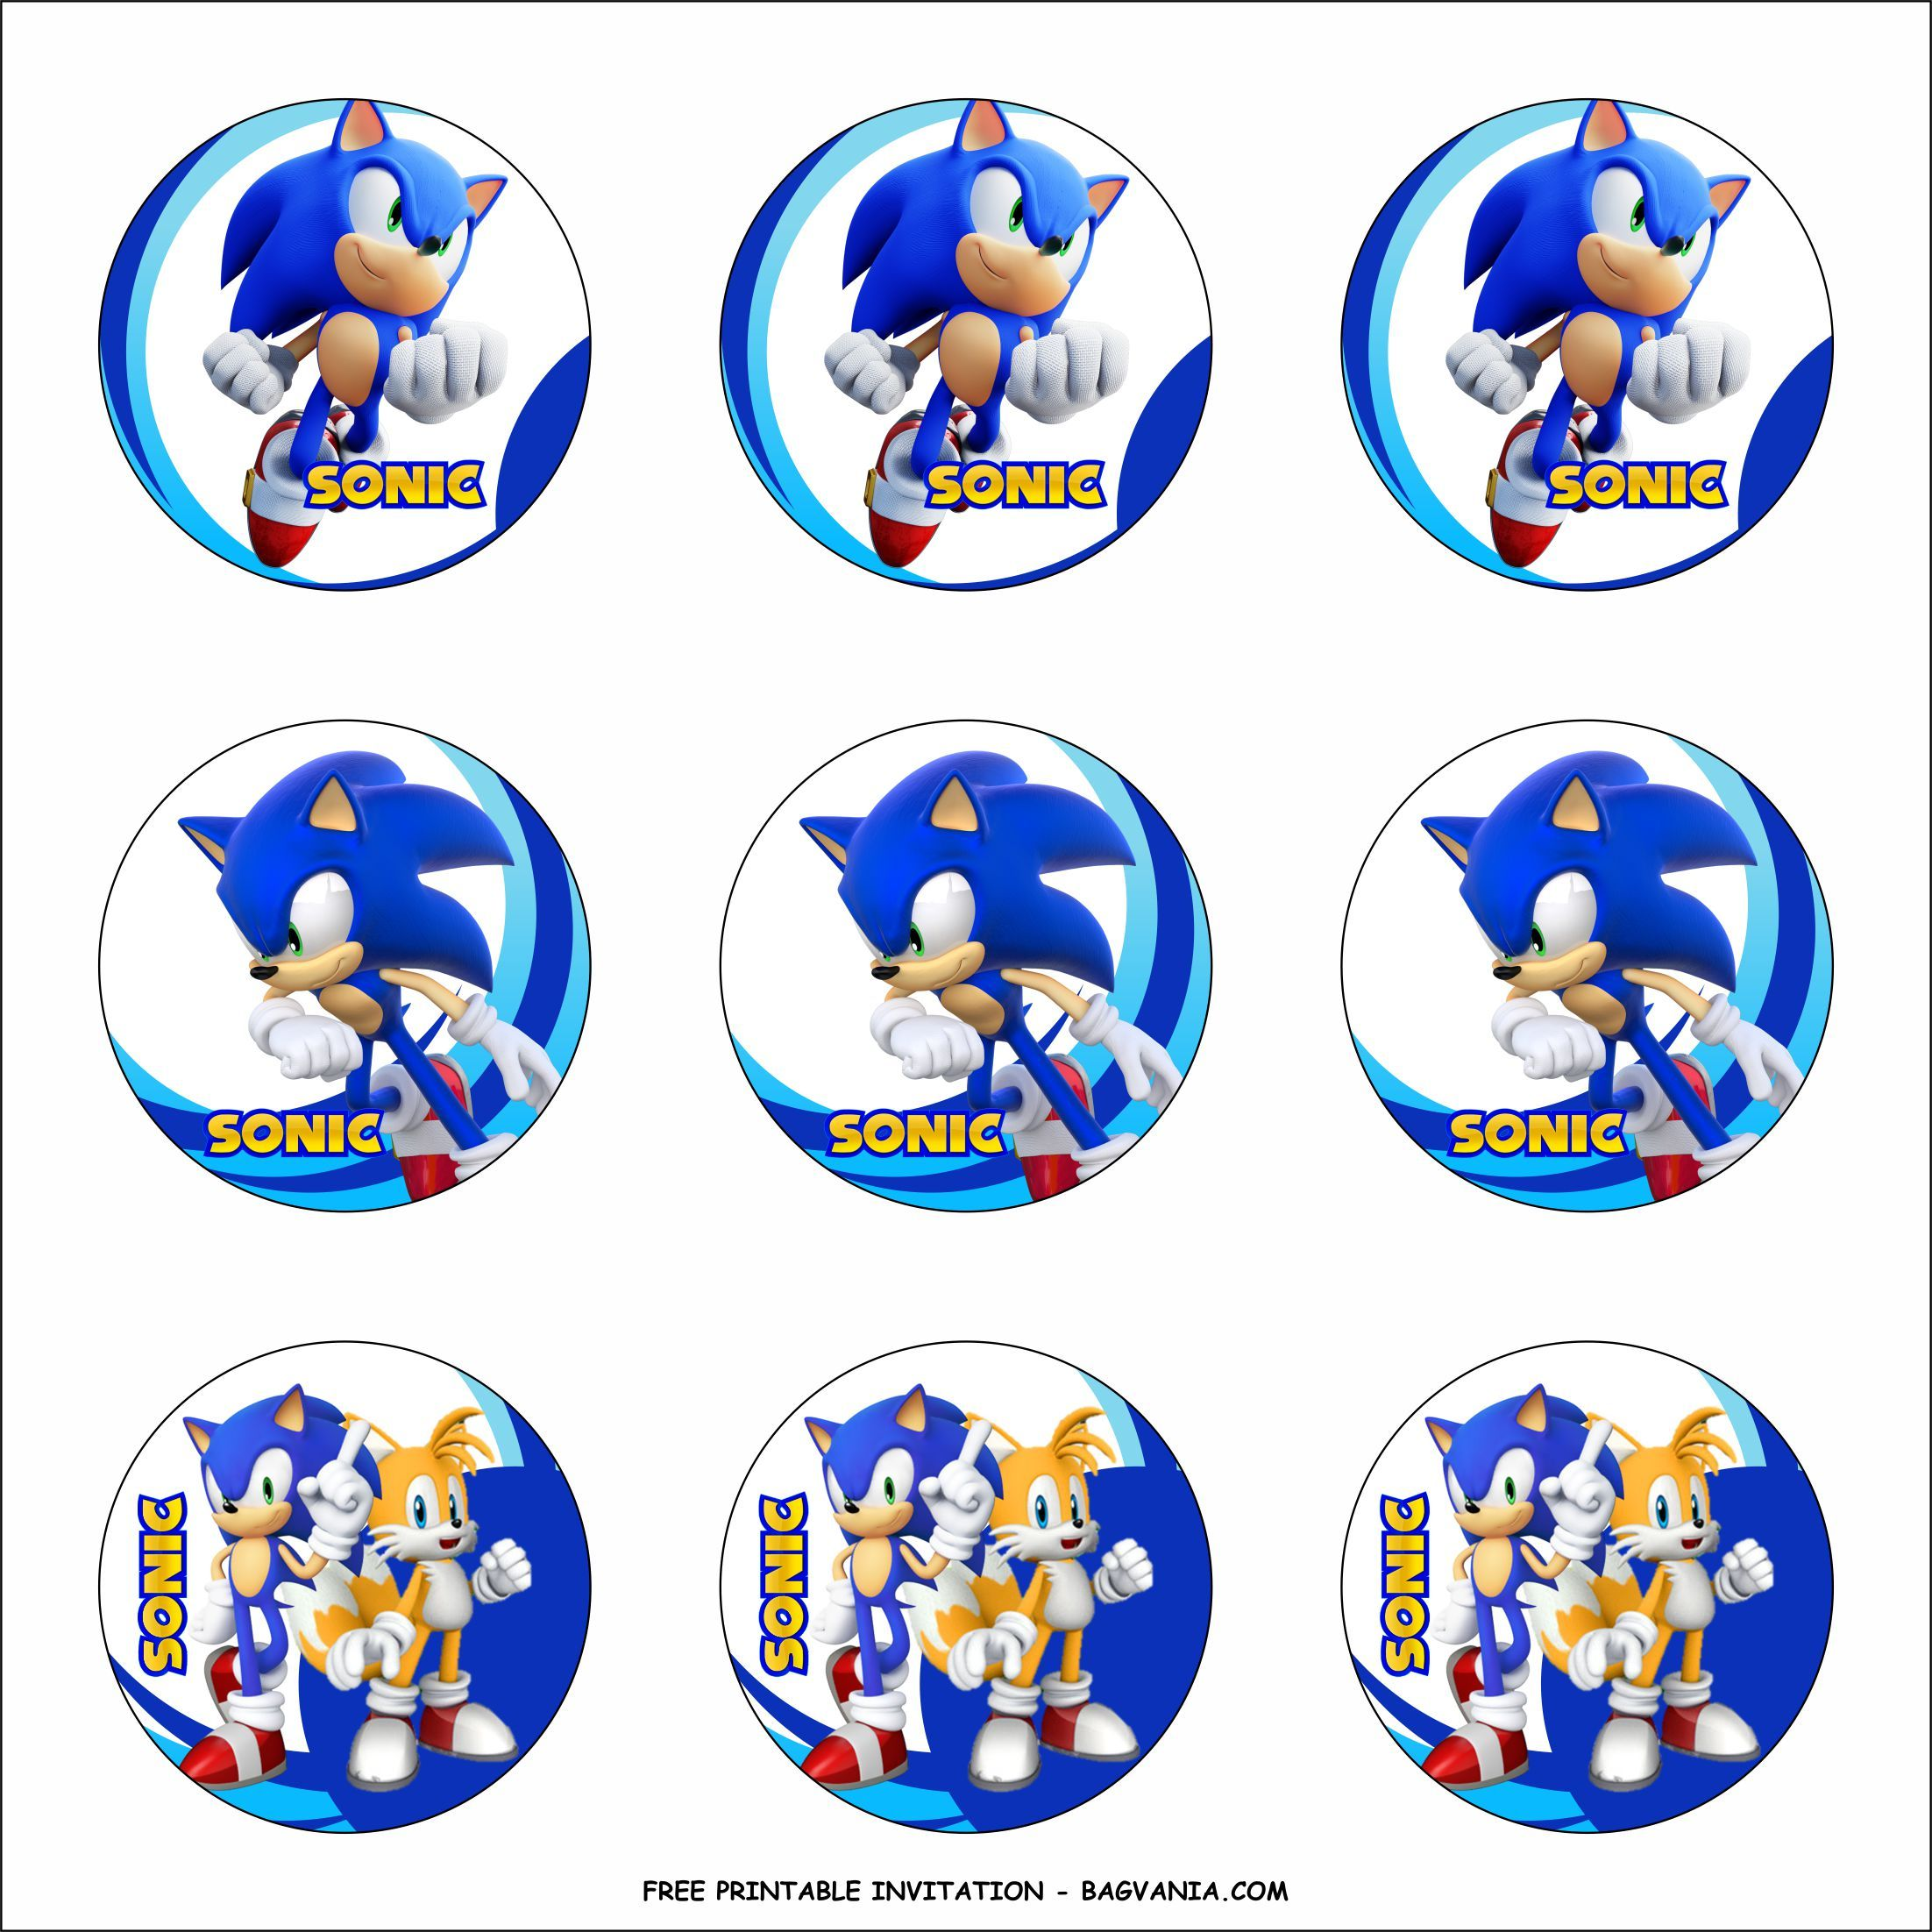 Free Printable Sonic The Hedgehog Birthday Party Kits Template Hedgehog Birthday Sonic Birthday Parties Sonic Birthday